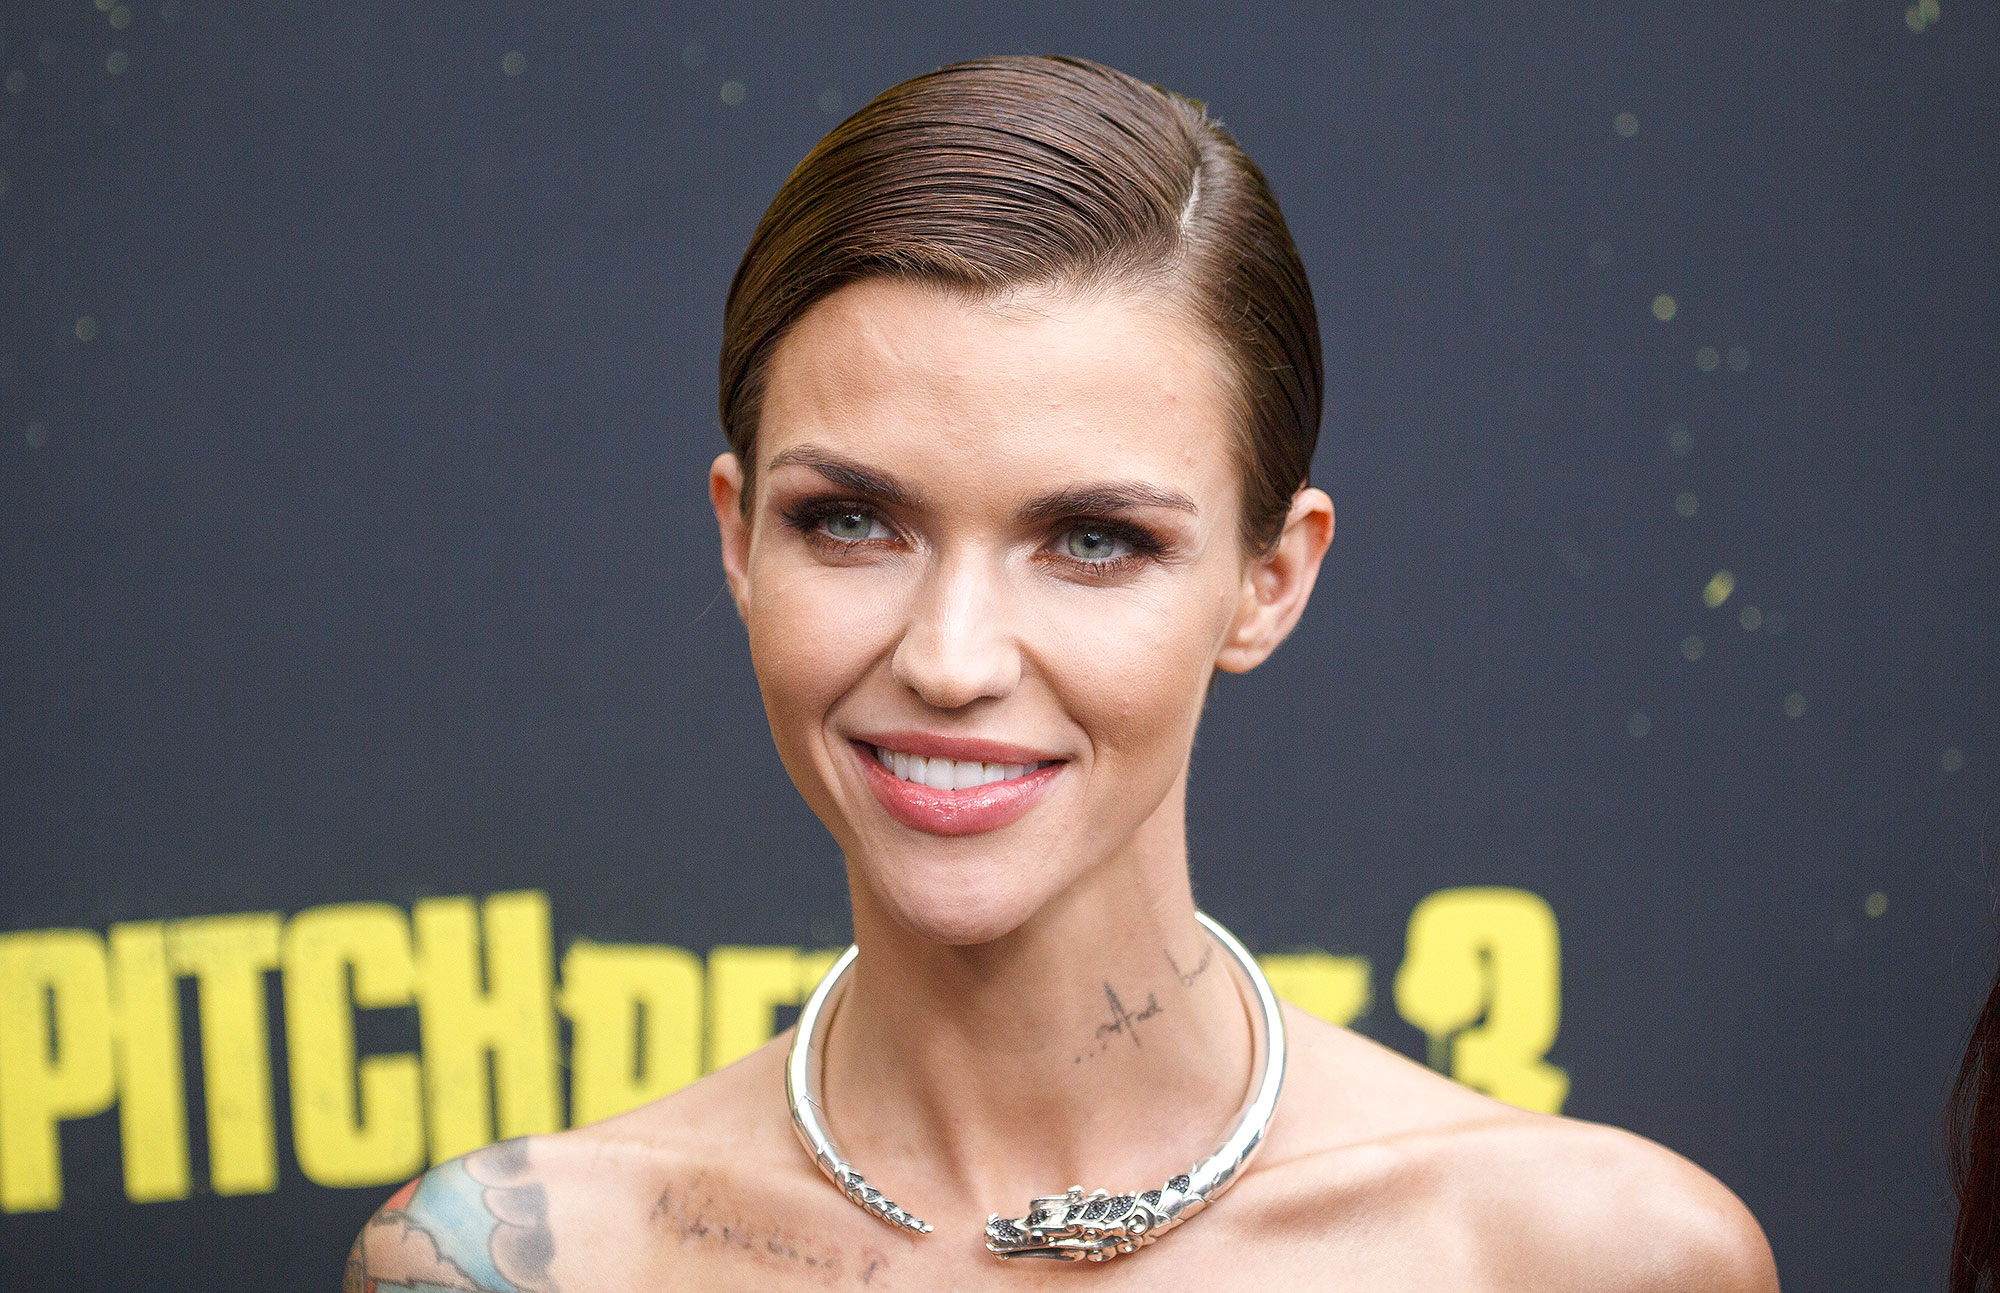 Ruby Rose and Red Carpet Arrivals for Sydney premiere of Pitch Perfect 3